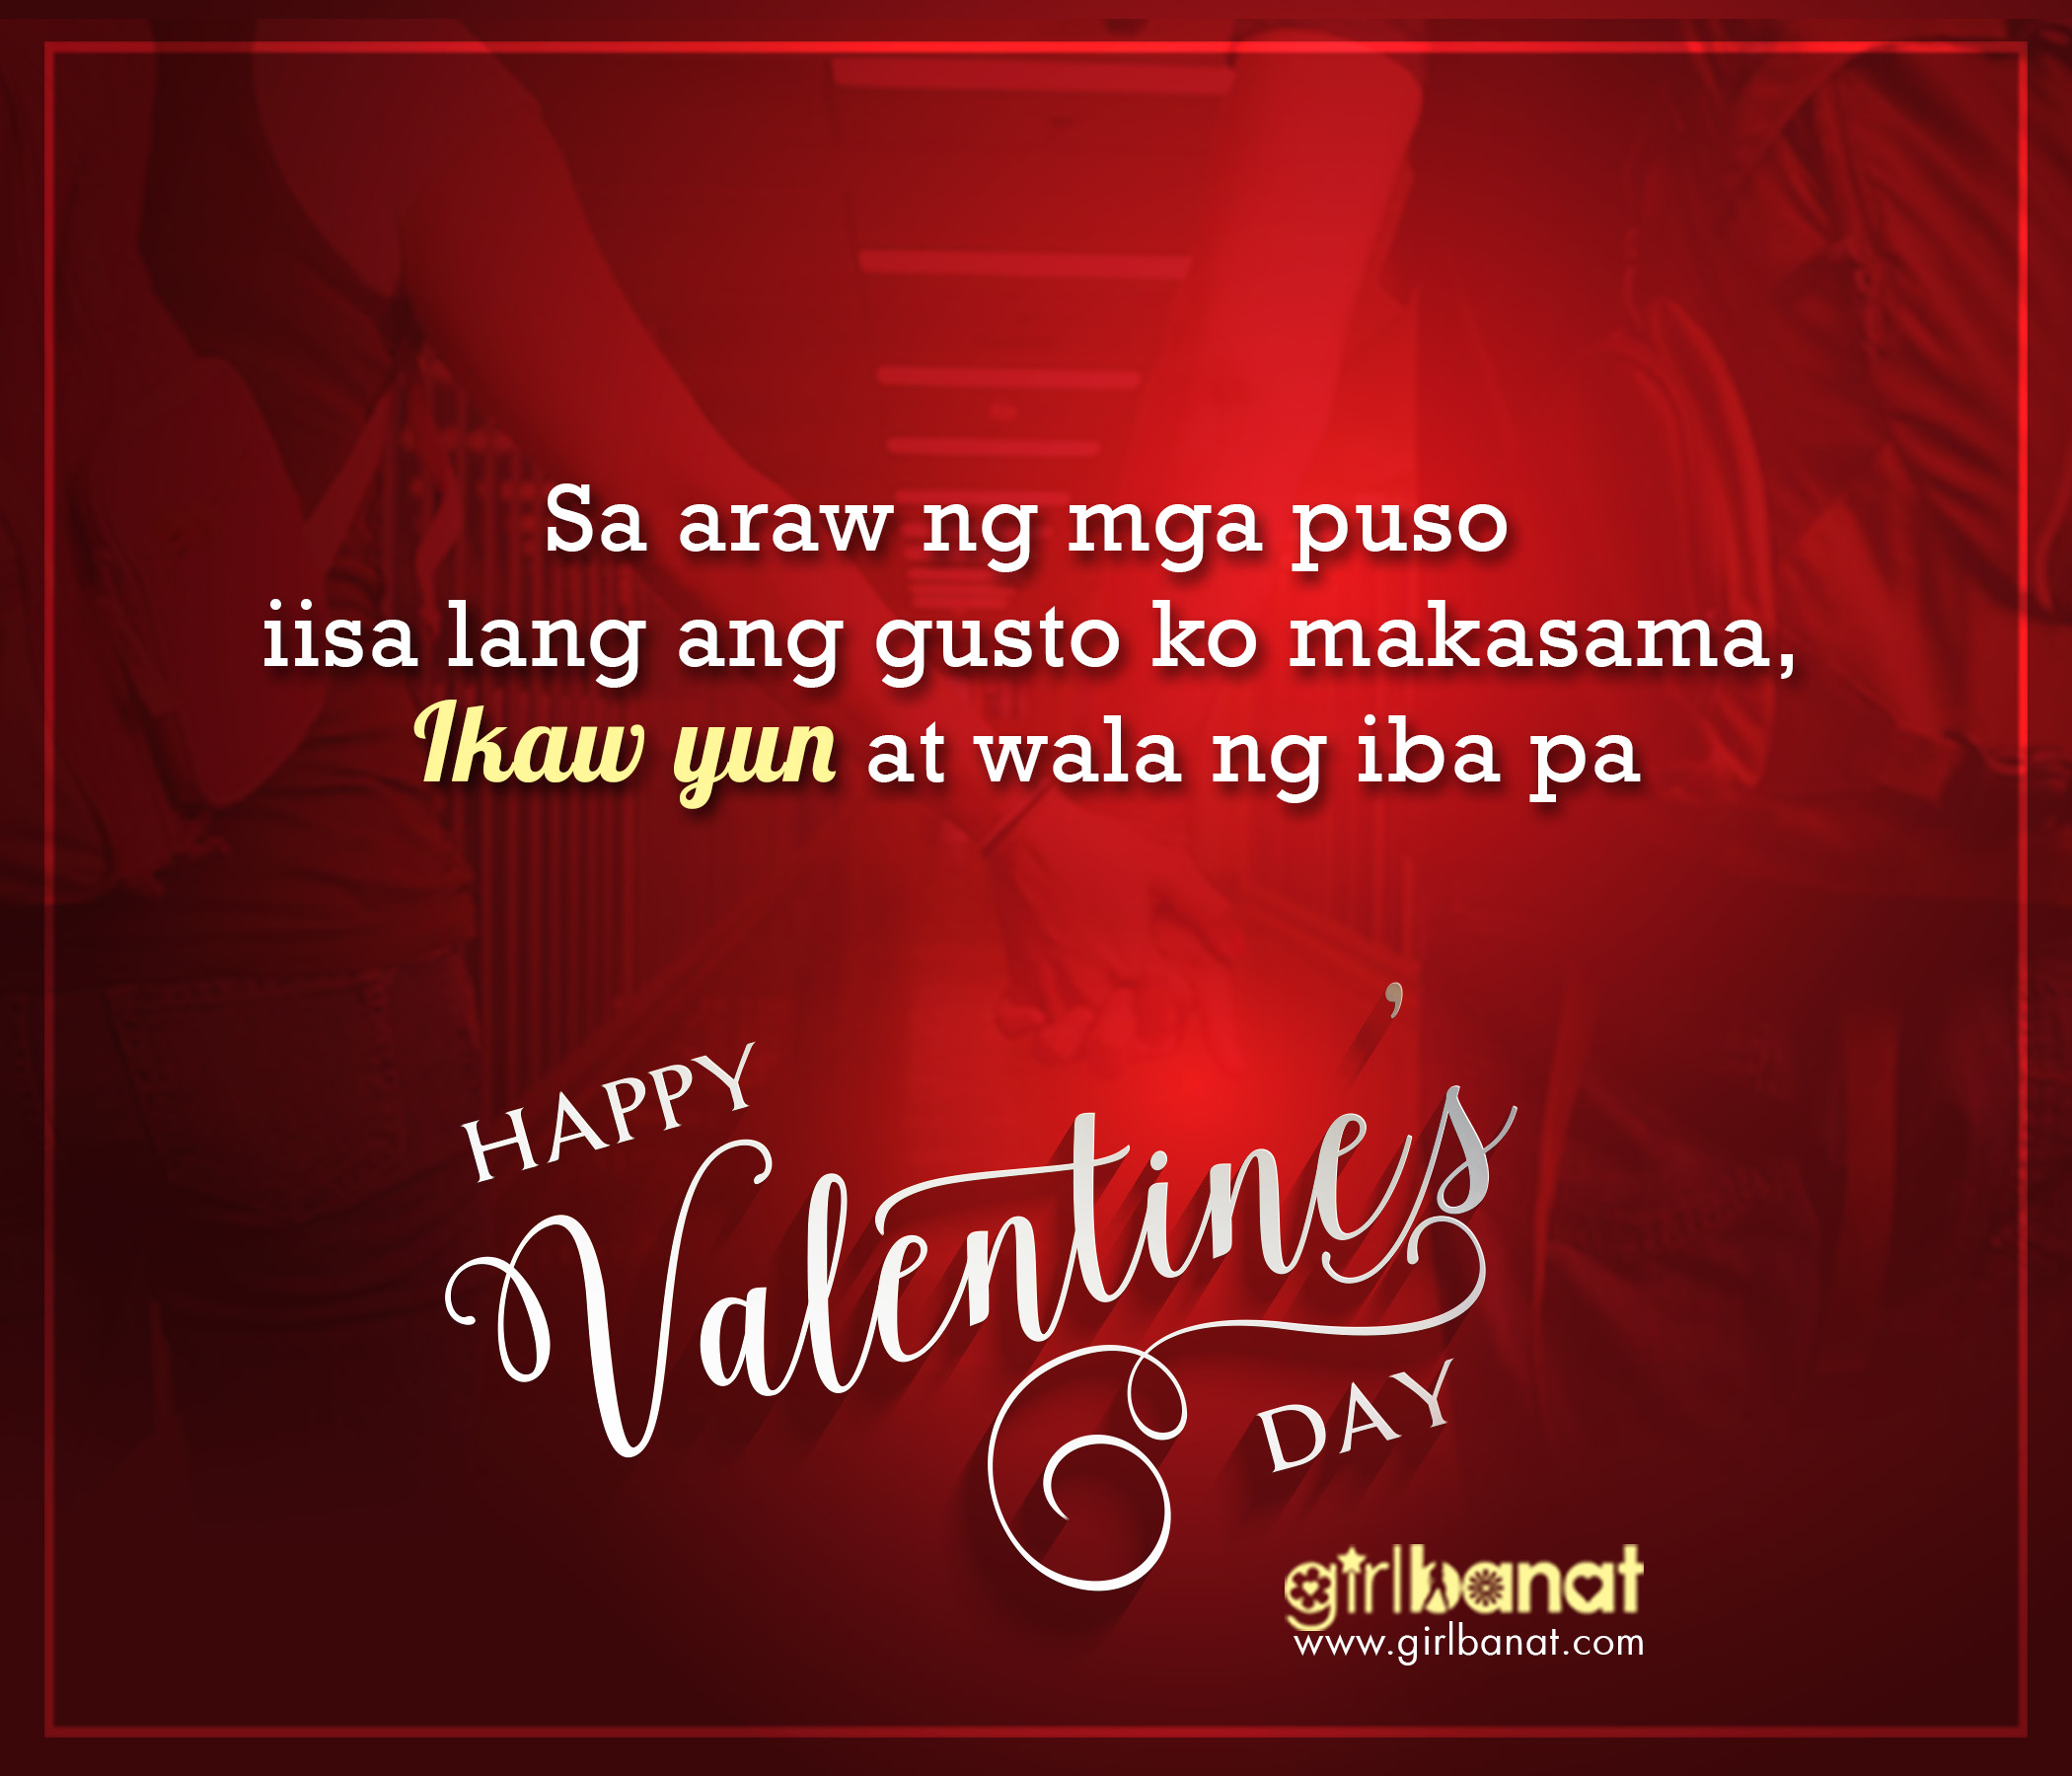 Tagalog Valentines Day Quotes that will Touch Your Heart